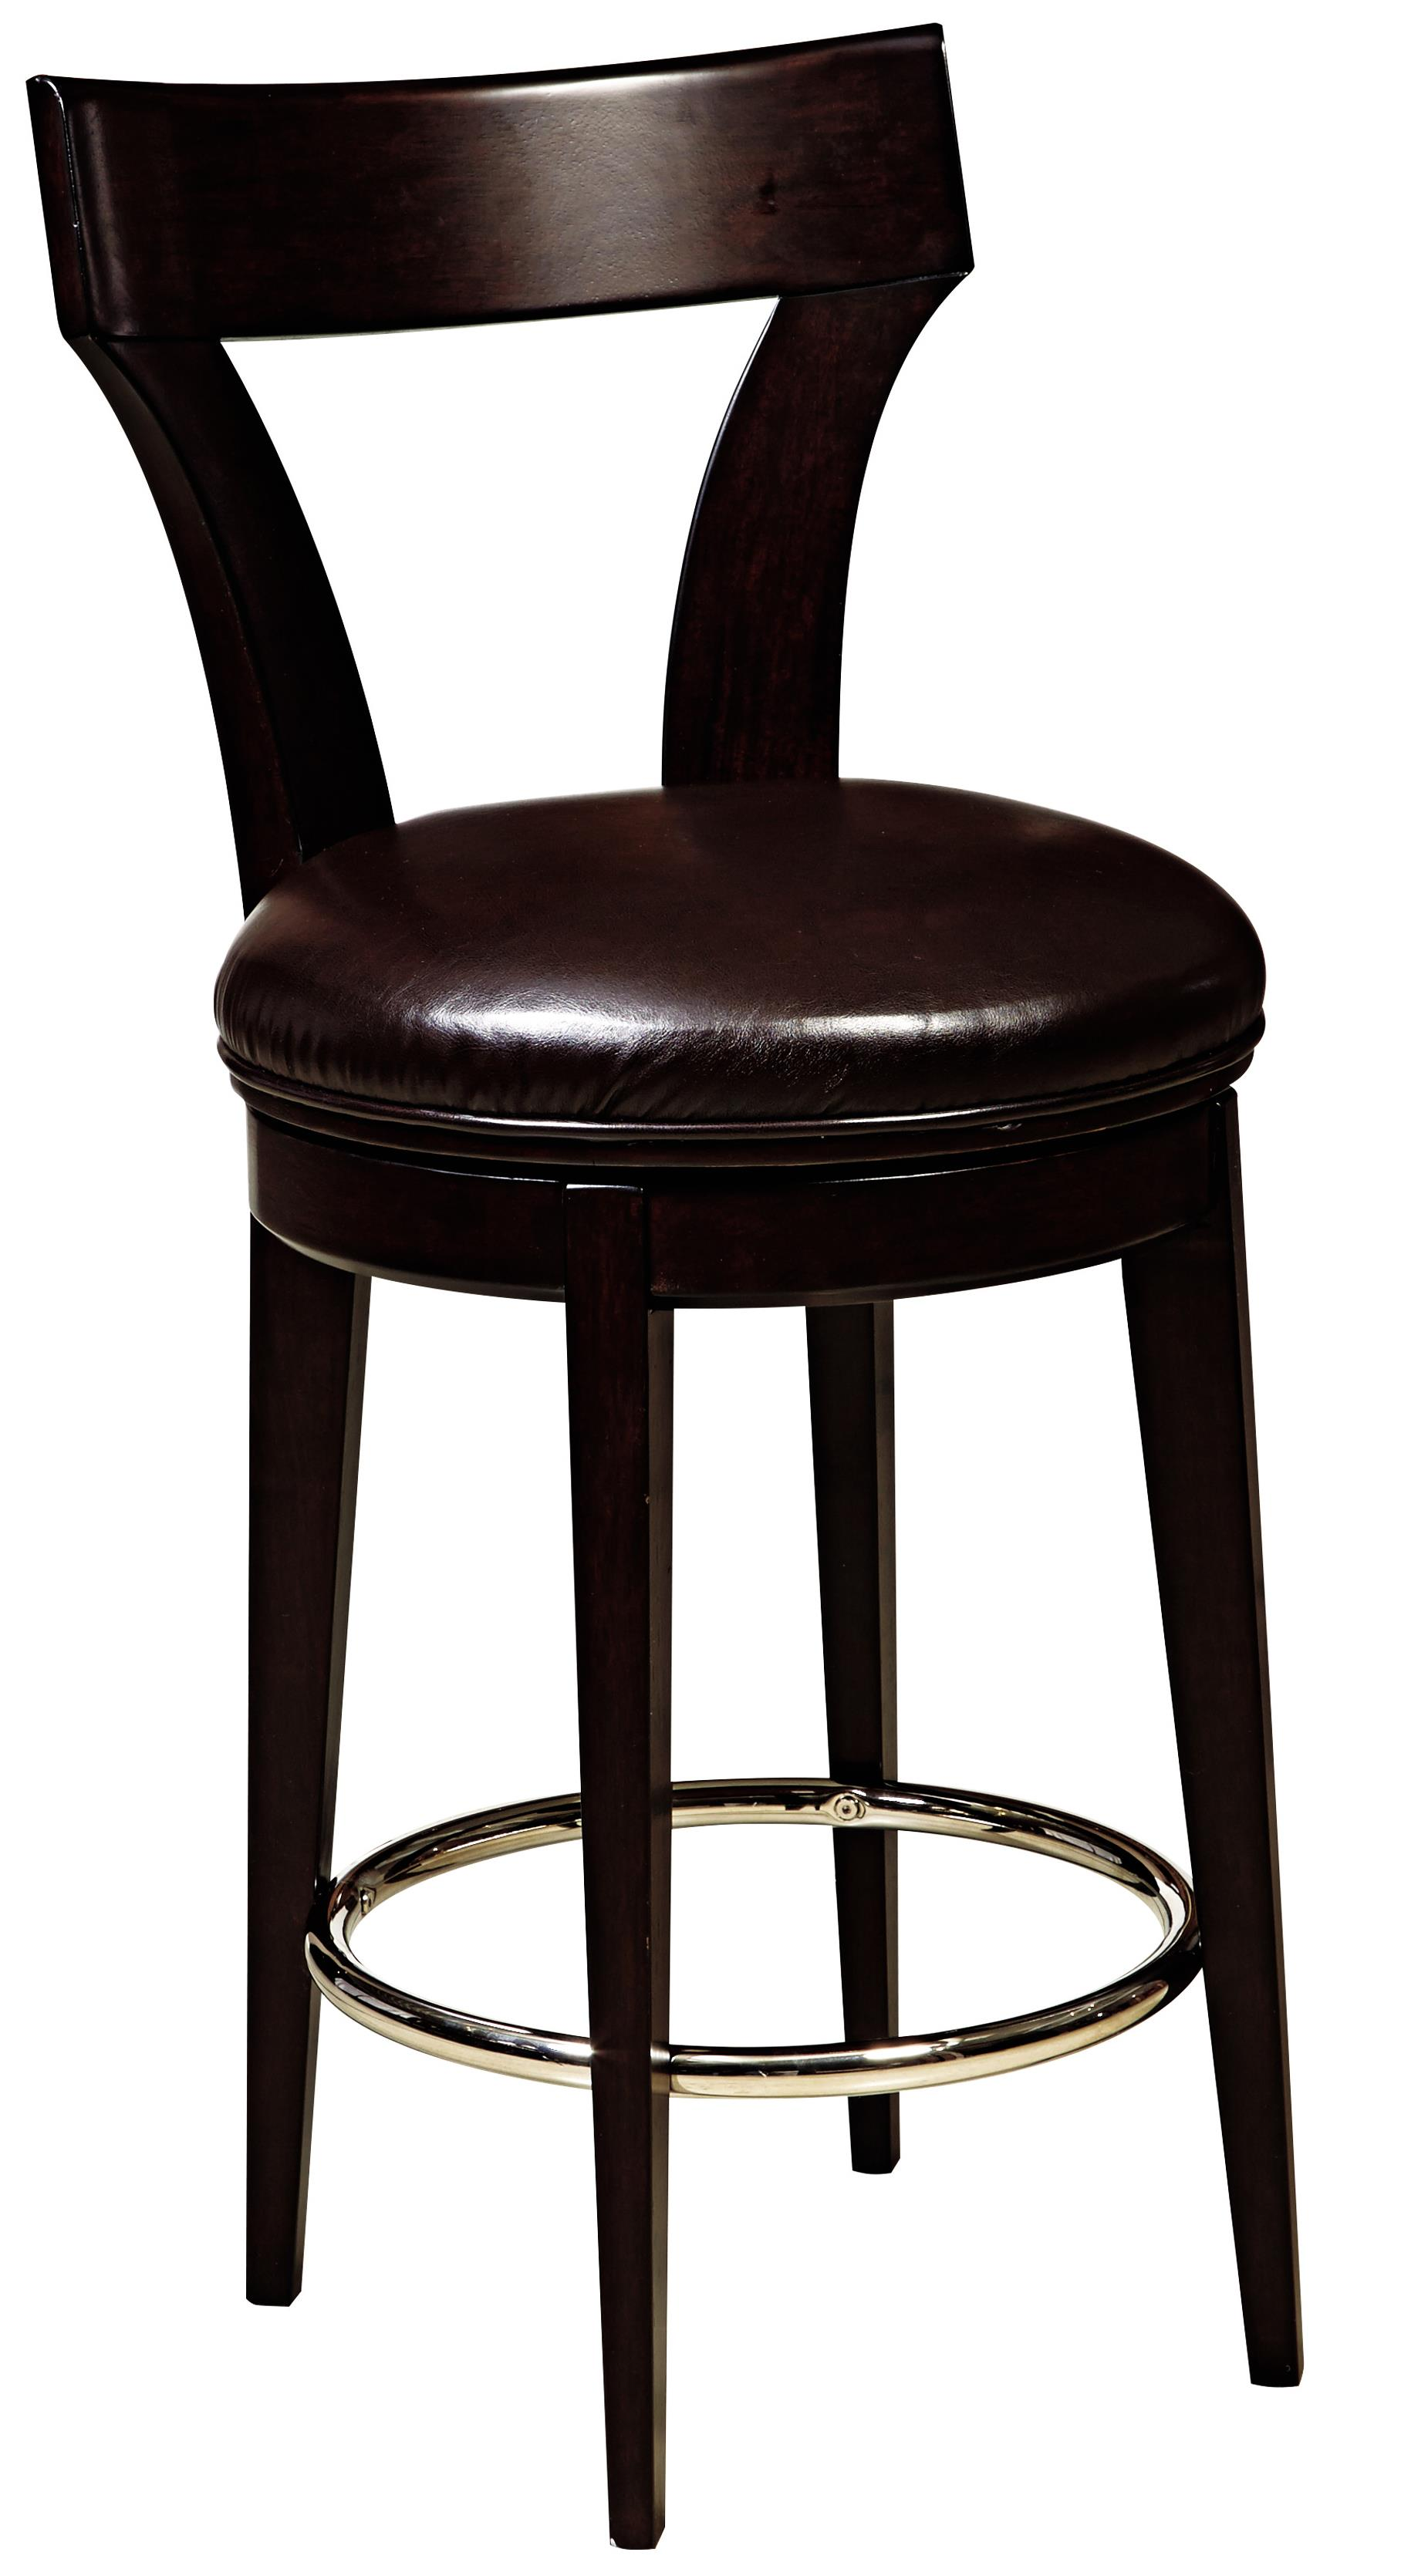 Pulaski Furniture Evo Bar Stool - Item Number: 675925